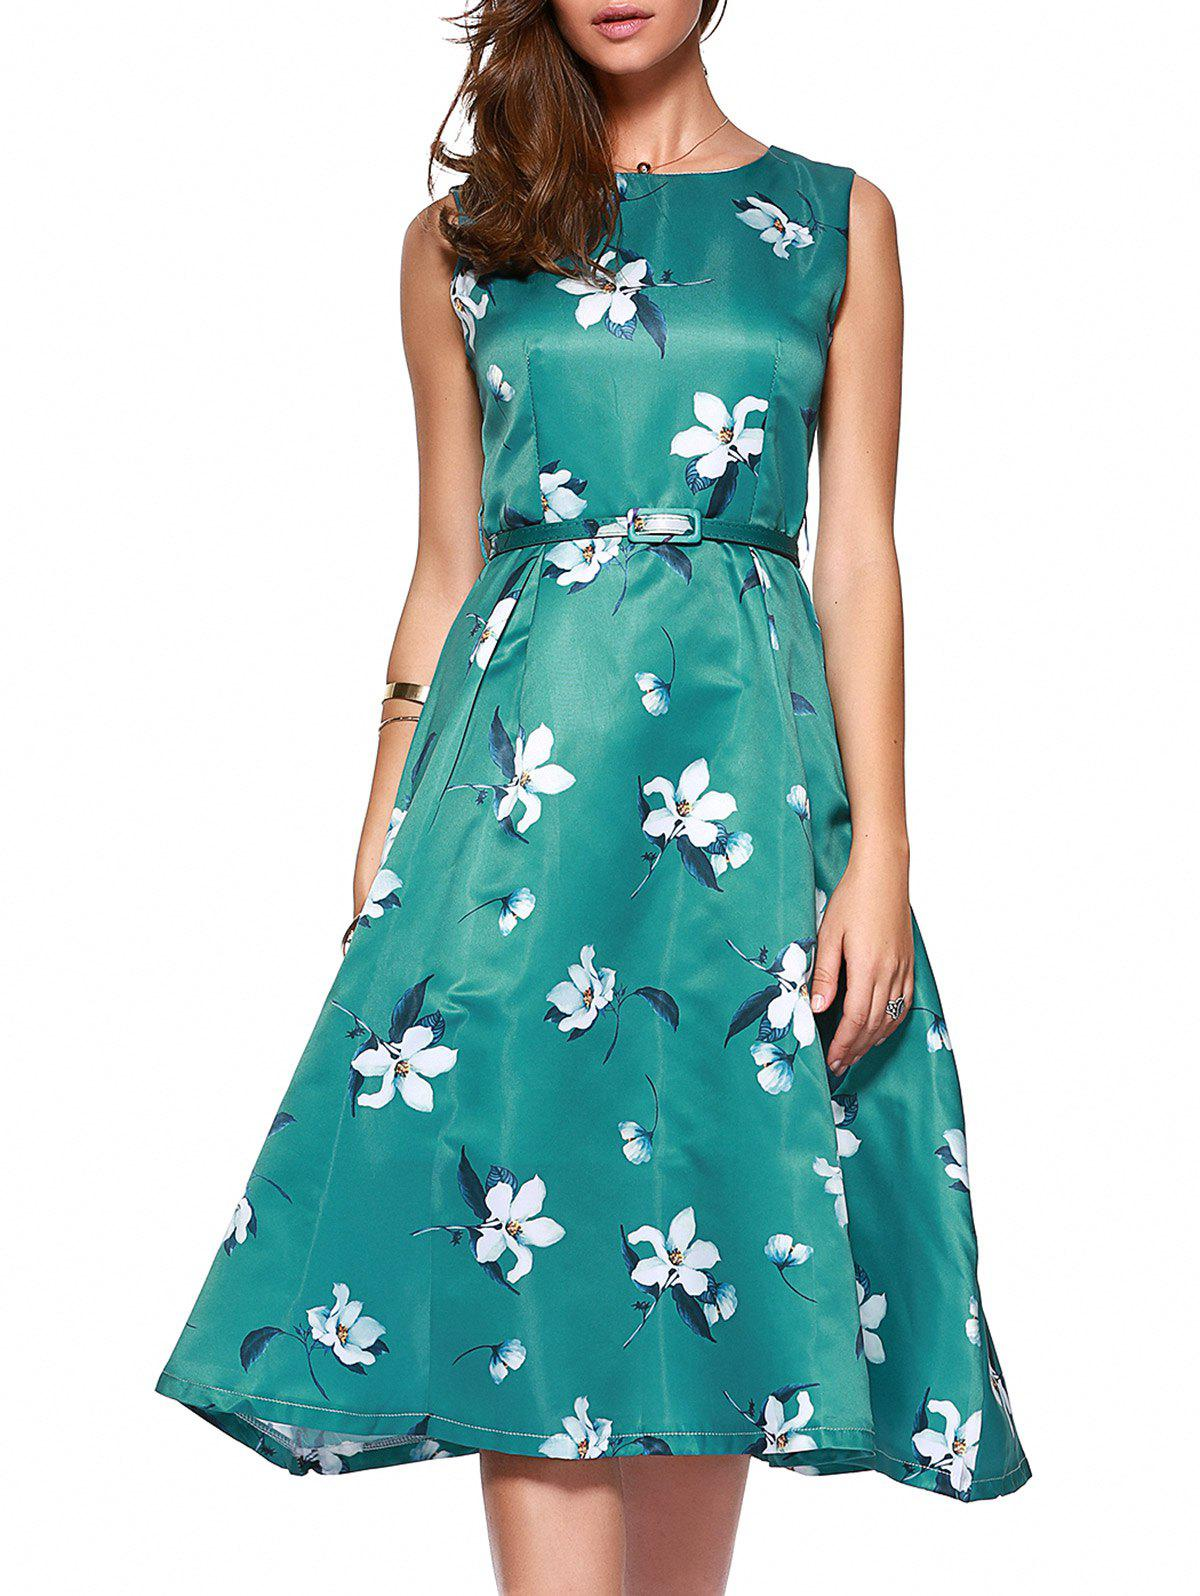 Sweet Women's Floral Print Belted Midi Dress